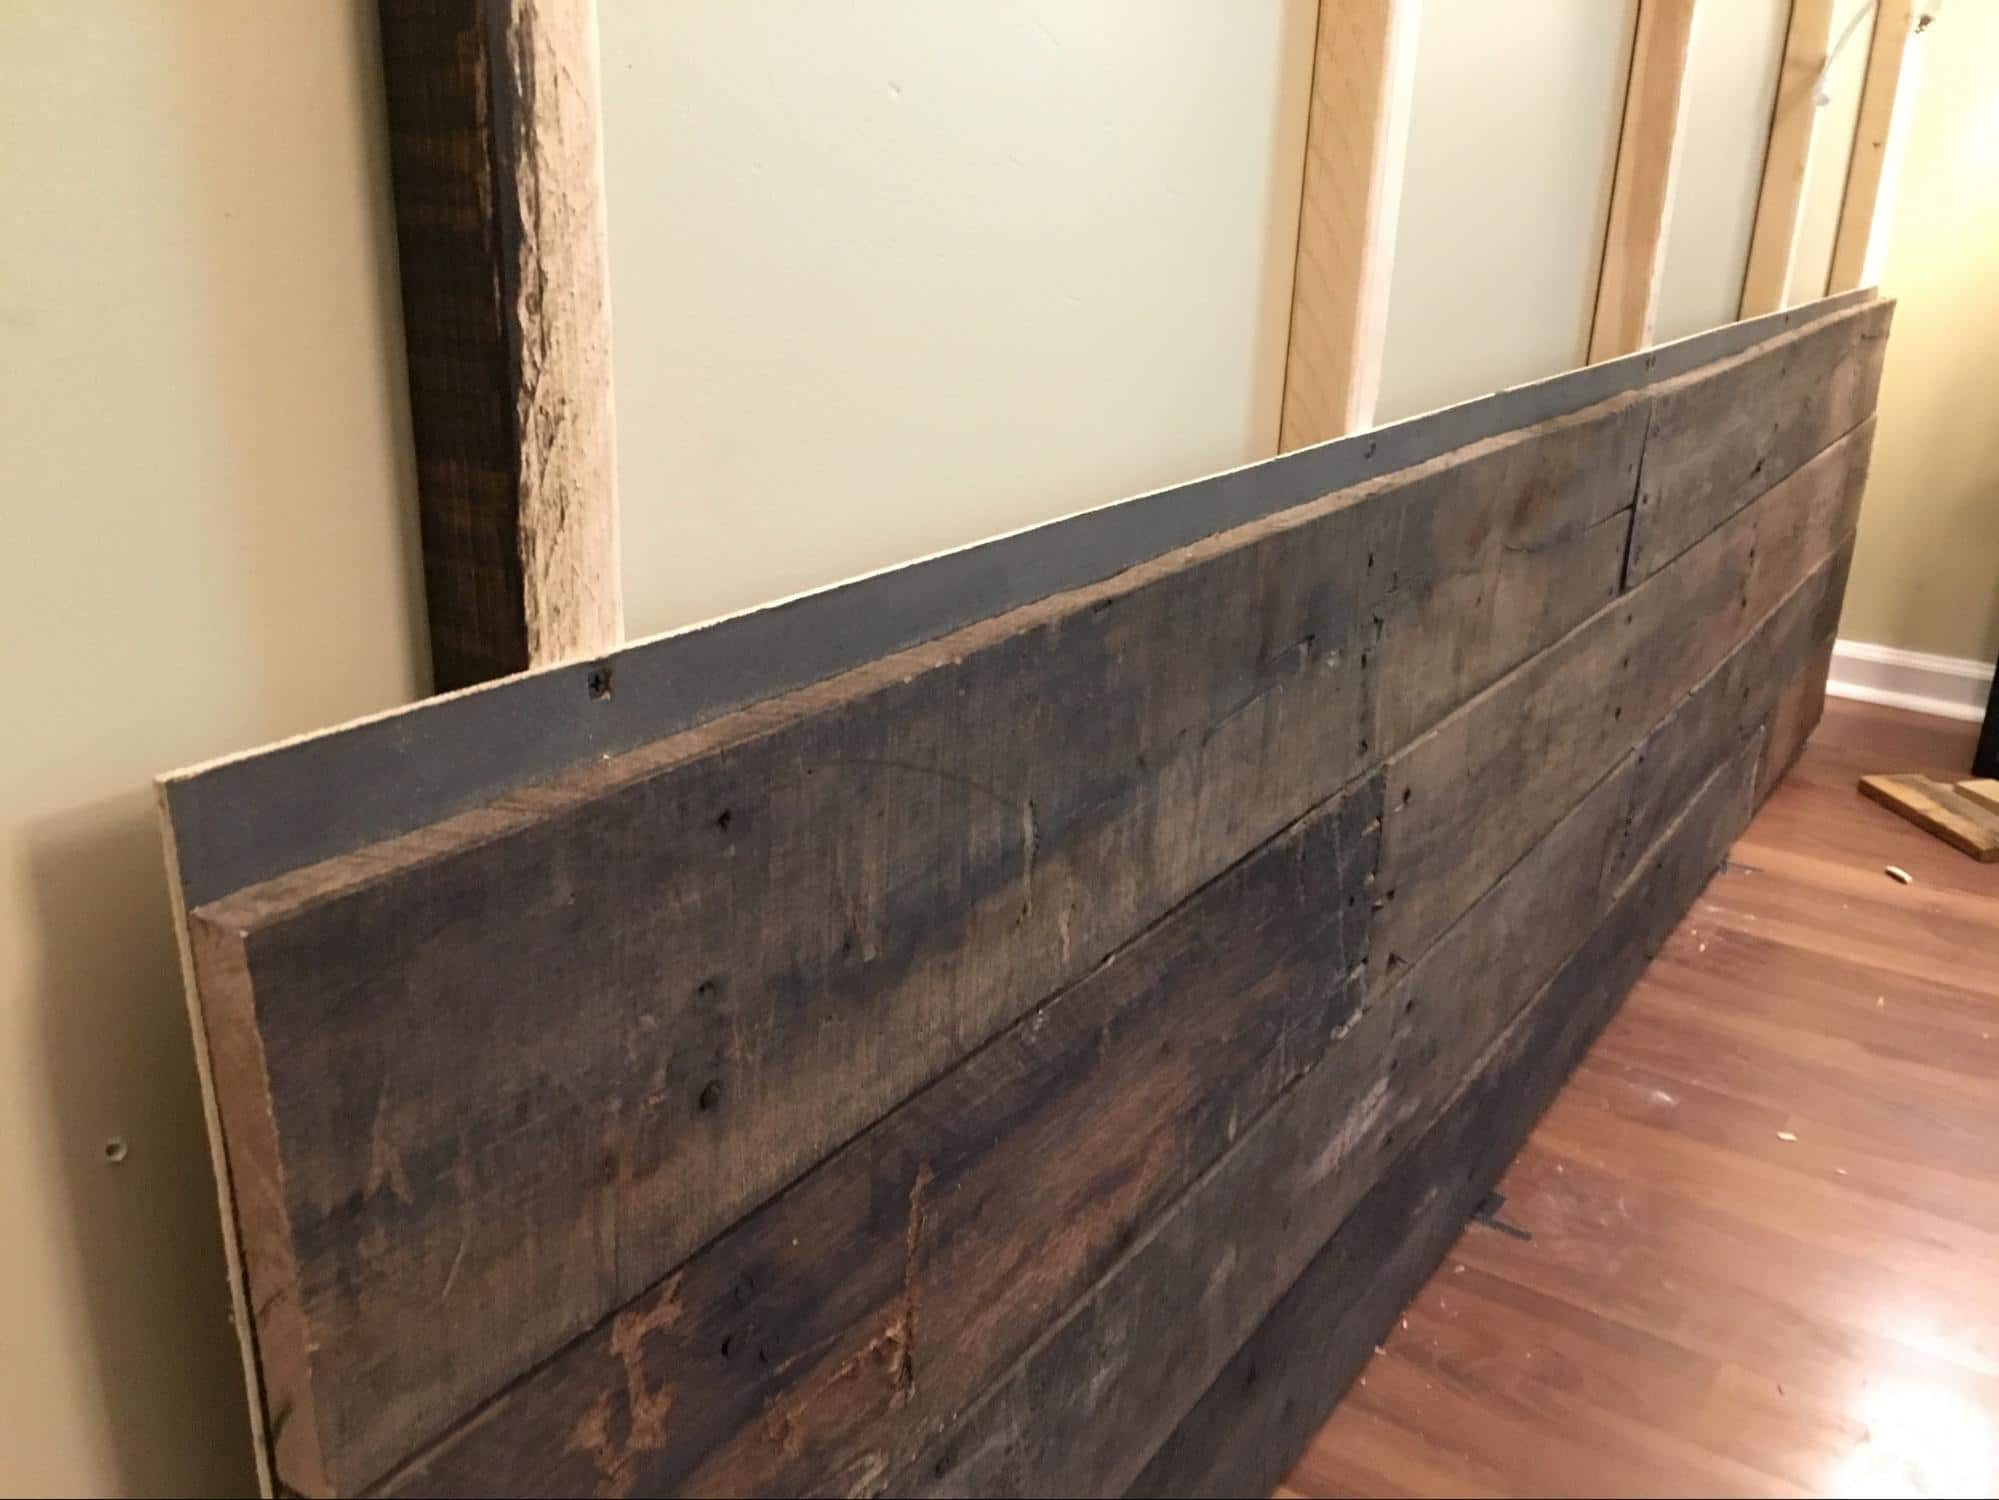 How to build wood wall background for home office - Anyvoo - Bottom piece of wood wall mounted to frame